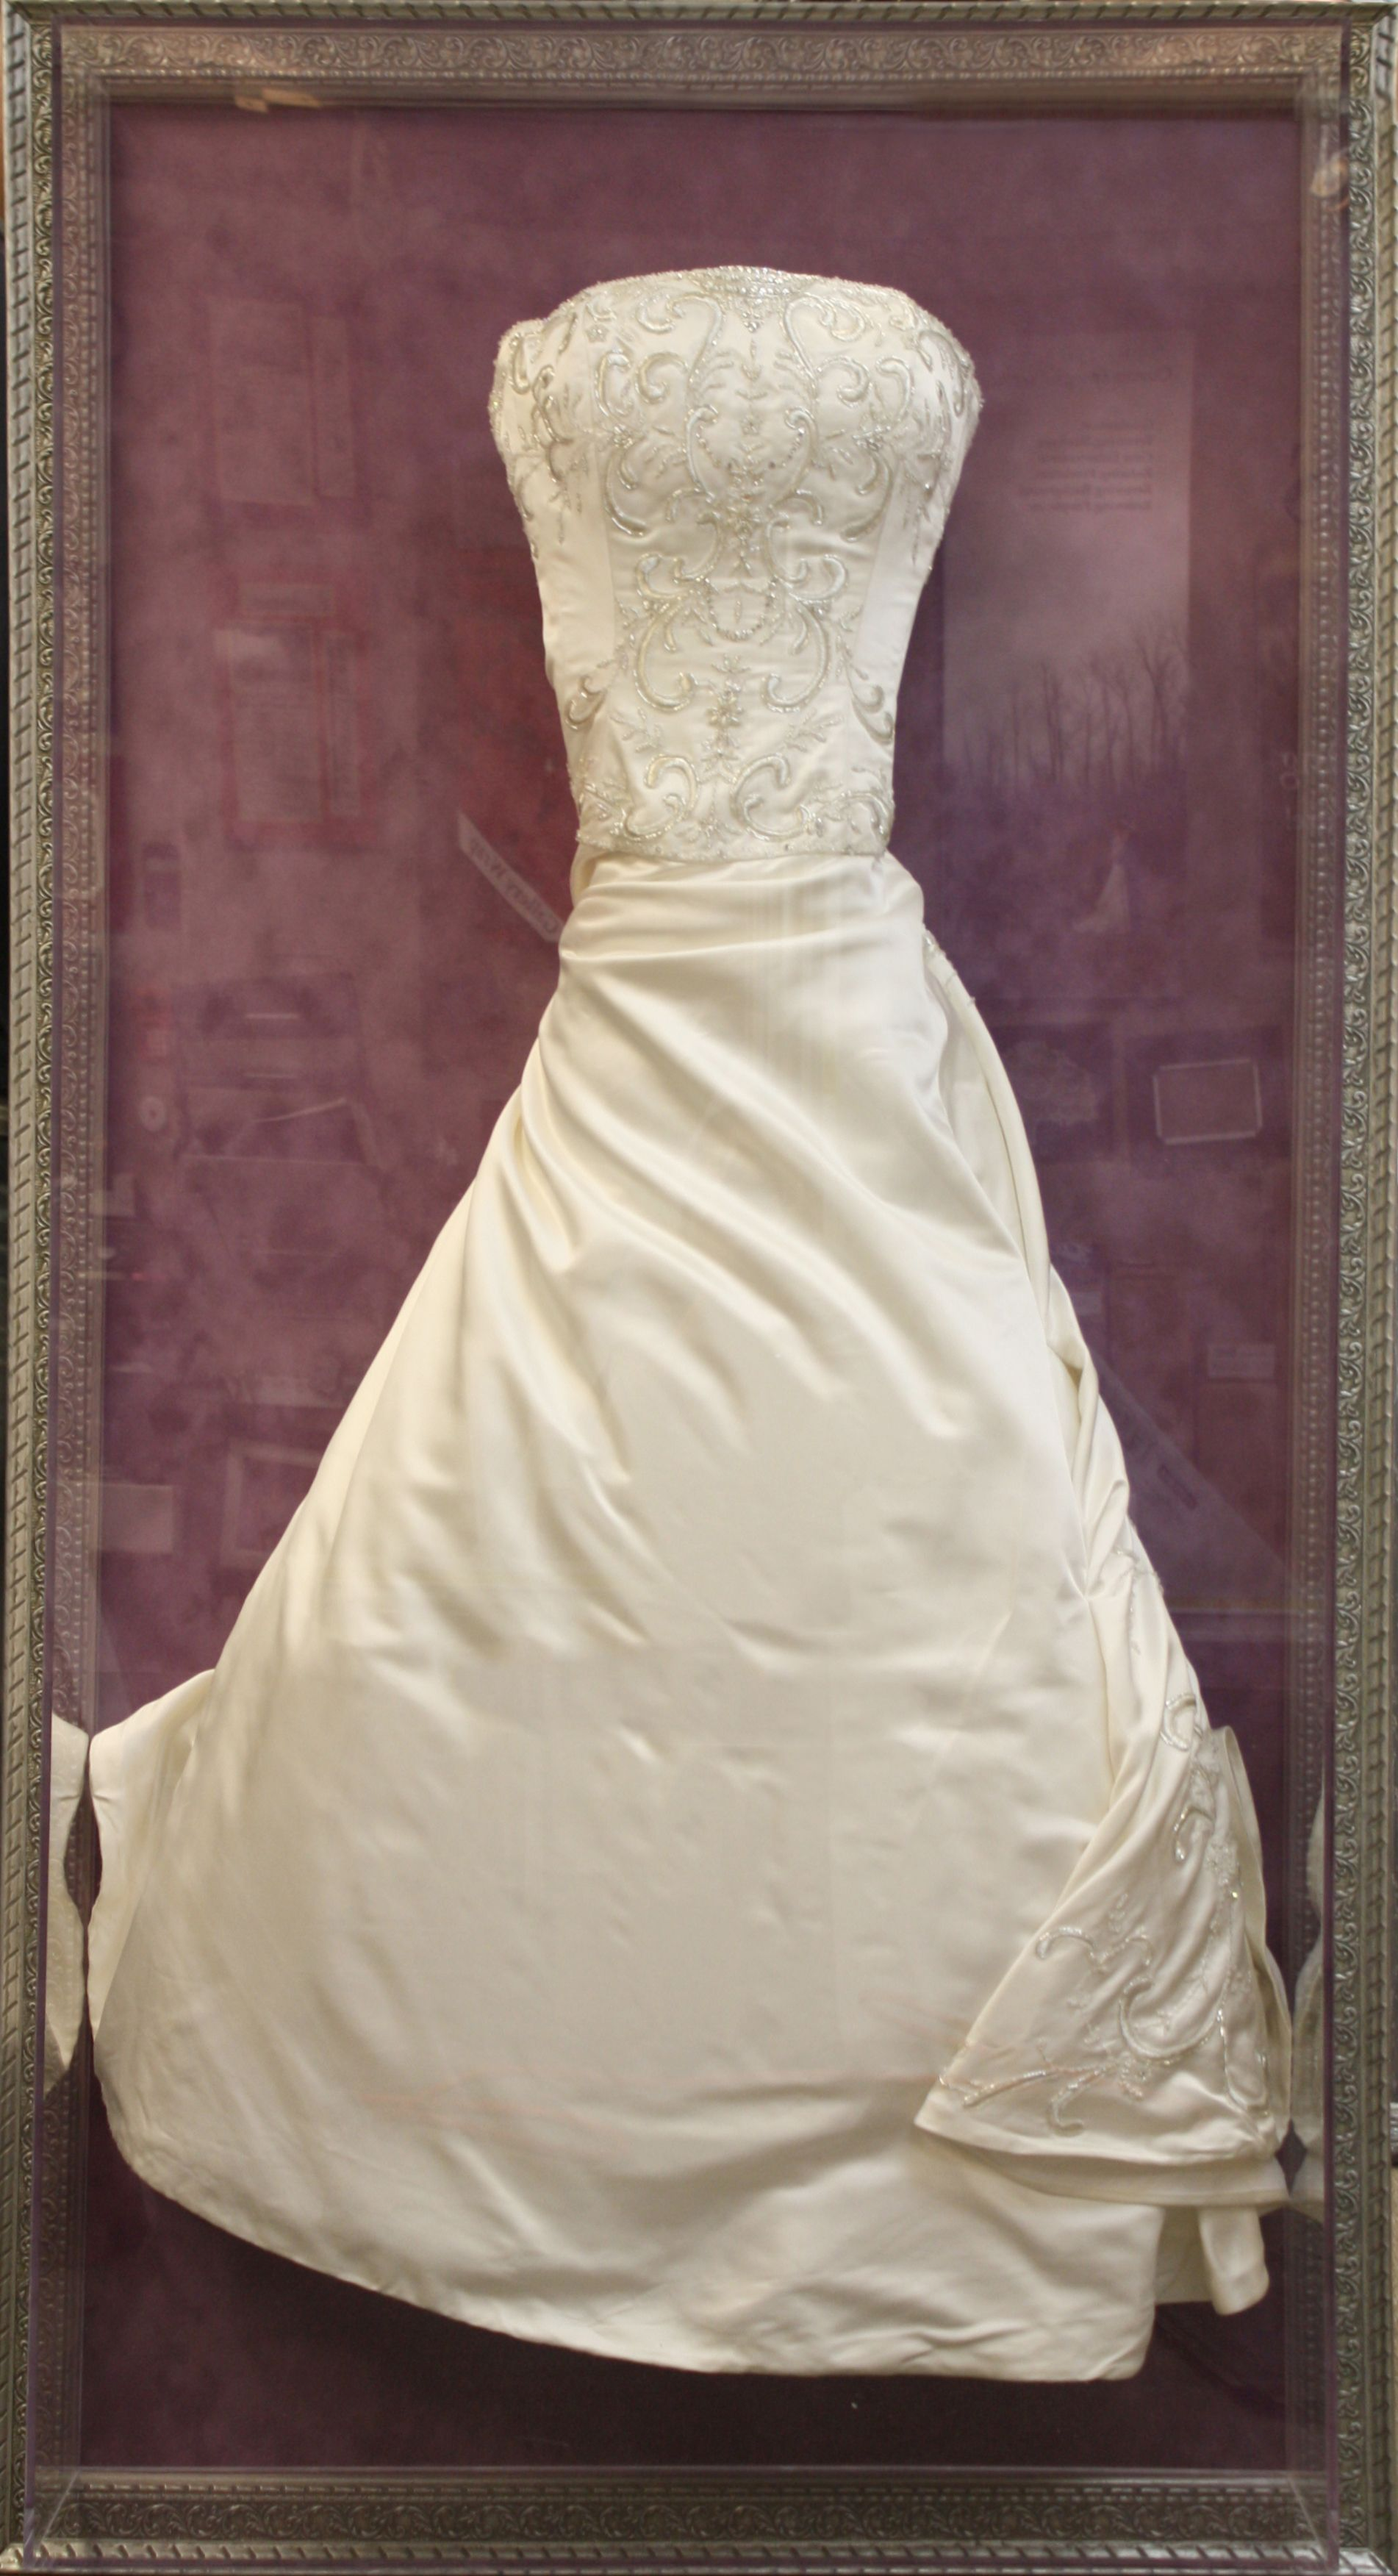 preserve your wedding dress in a custom shadowbox frame amazing way to showcase your gown